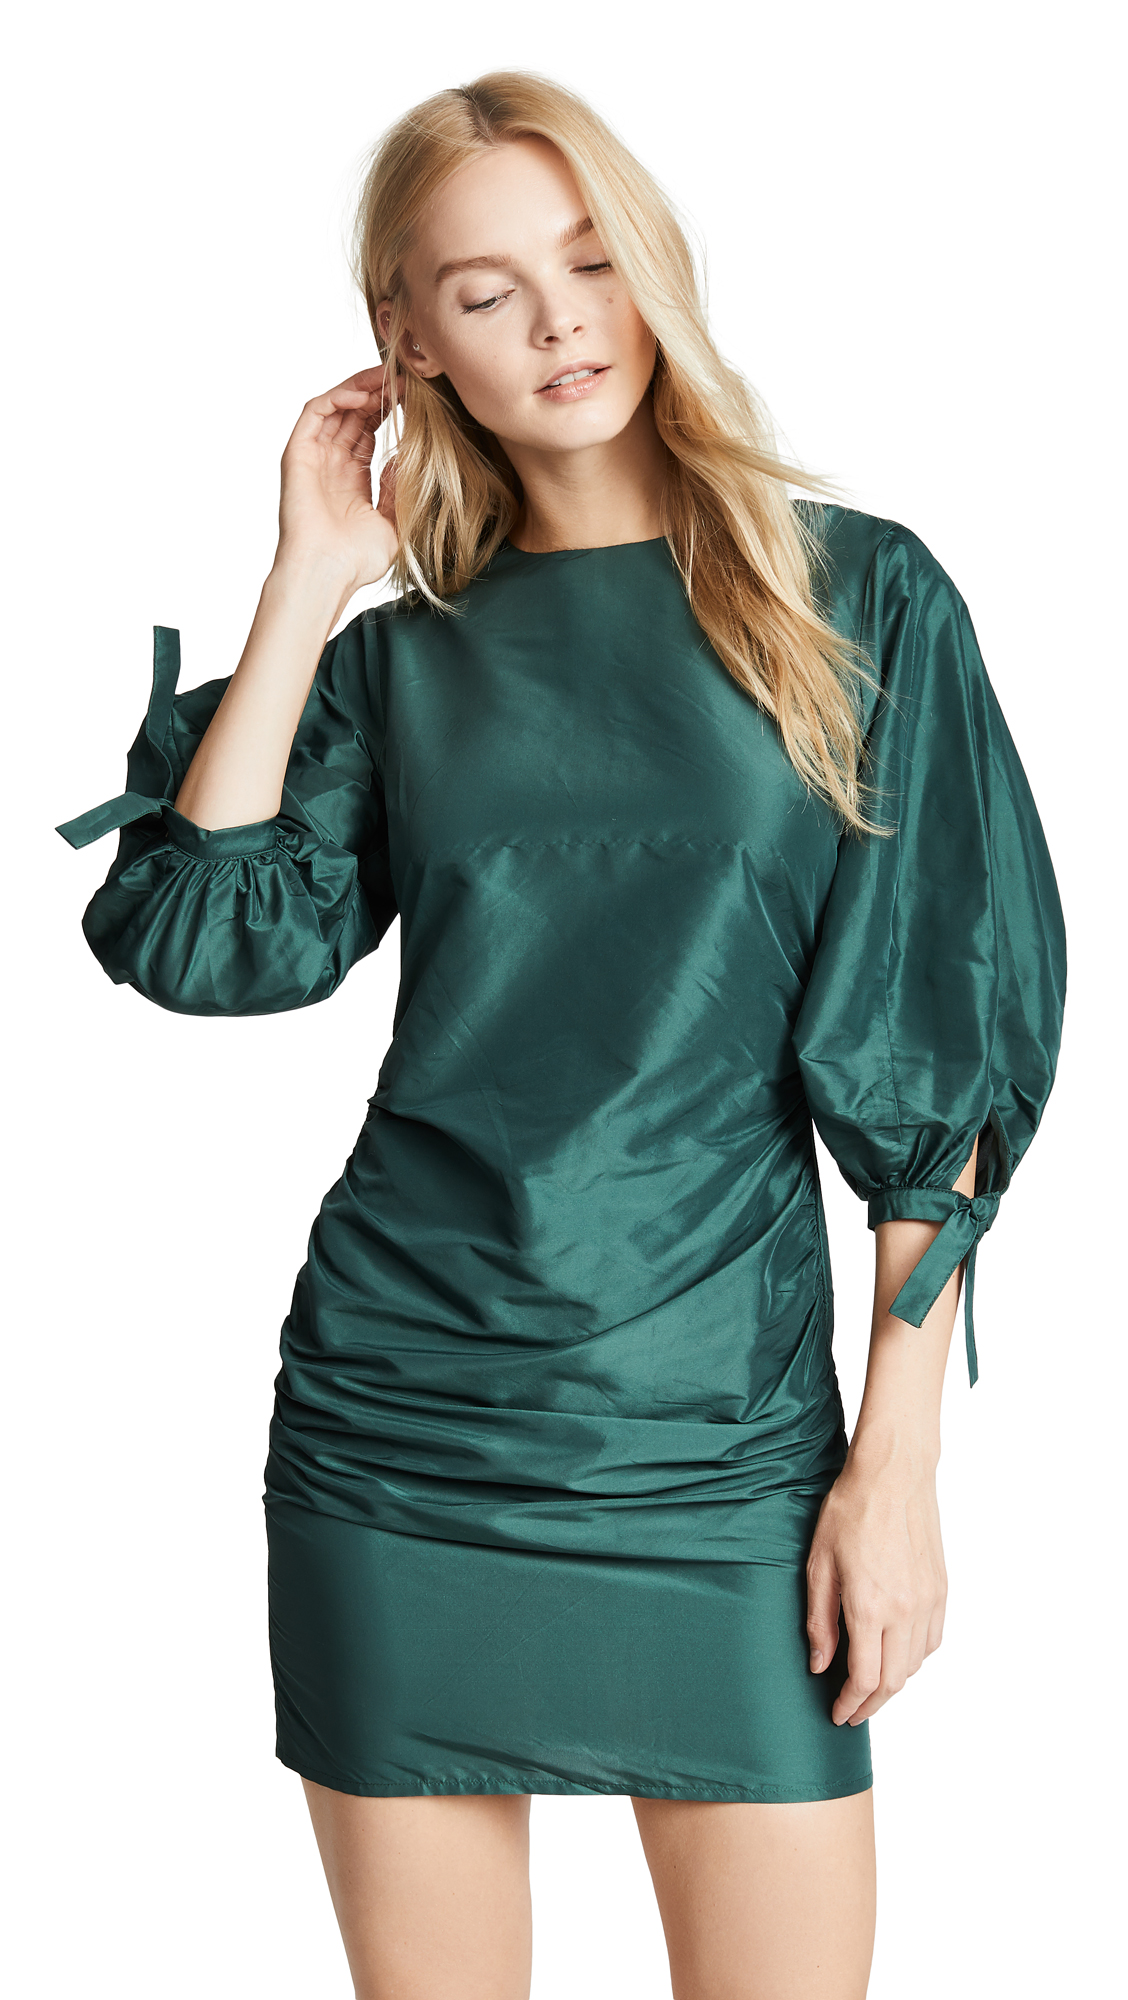 Cynthia Rowley Ruched Mini Dress - Emerald